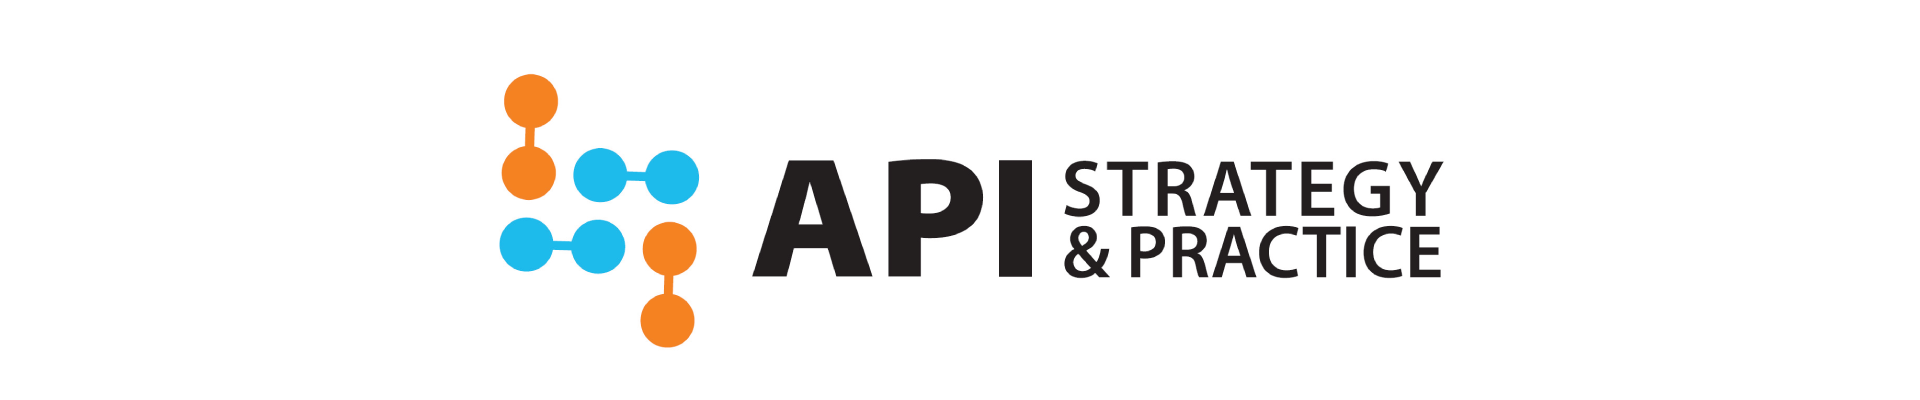 apistrat-followup-banner.png